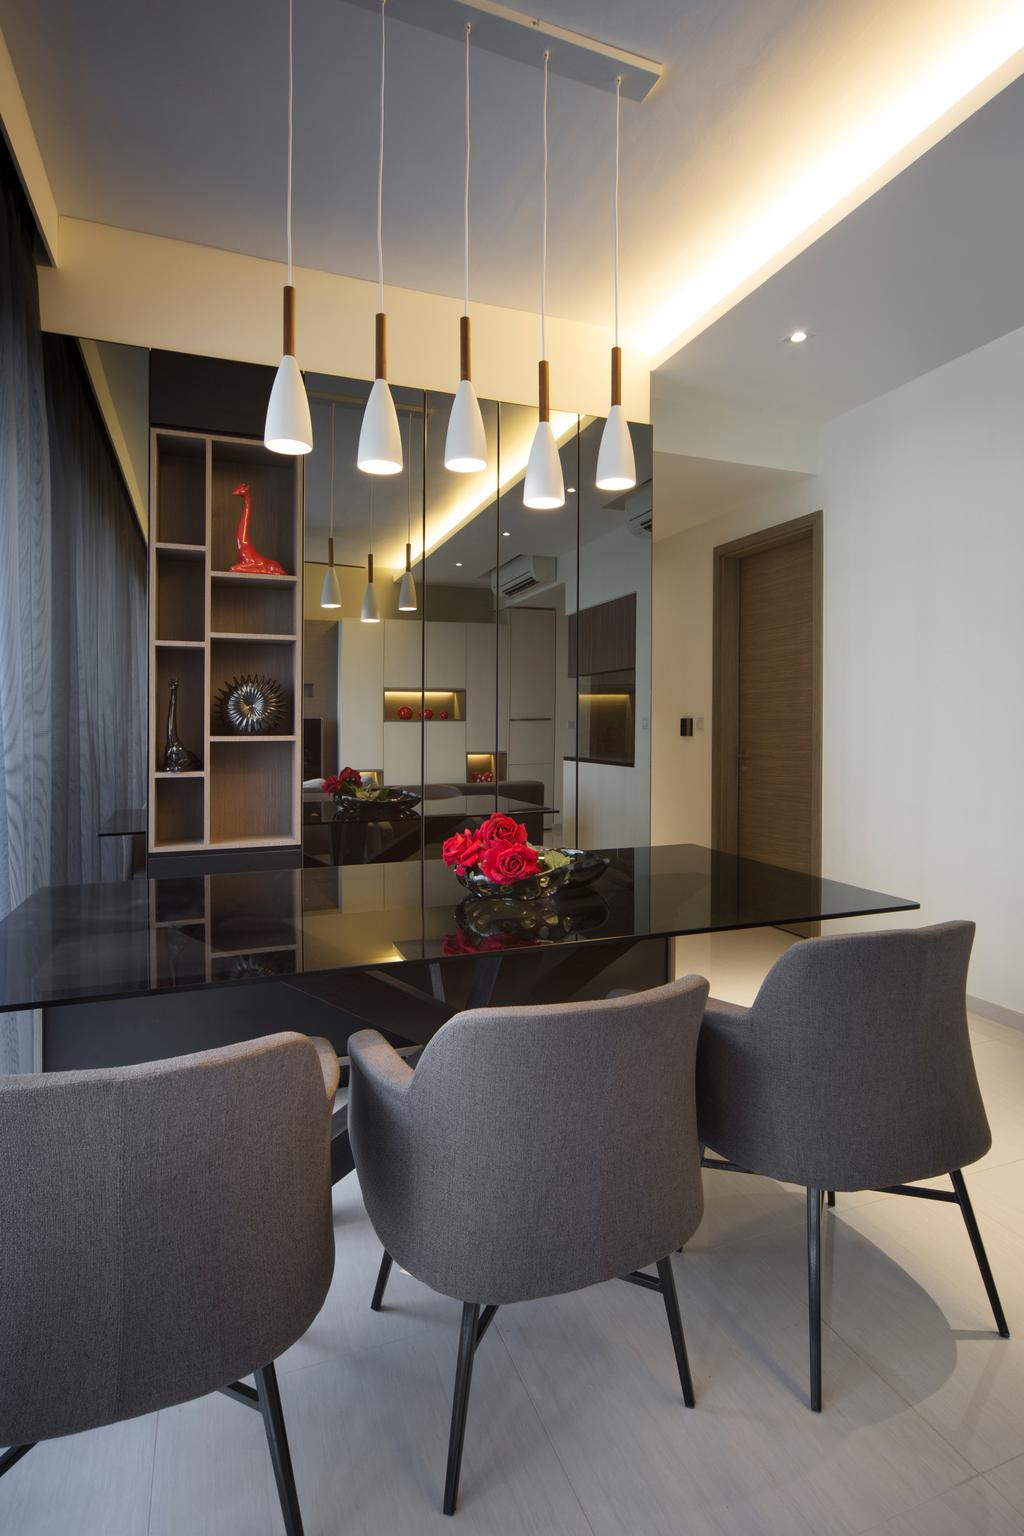 Modern, Condo, Dining Room, The Palette, Interior Designer, Yonder, Flora, Jar, Plant, Potted Plant, Pottery, Vase, Couch, Furniture, Indoors, Interior Design, Room, Chair, Appliance, Electrical Device, Oven